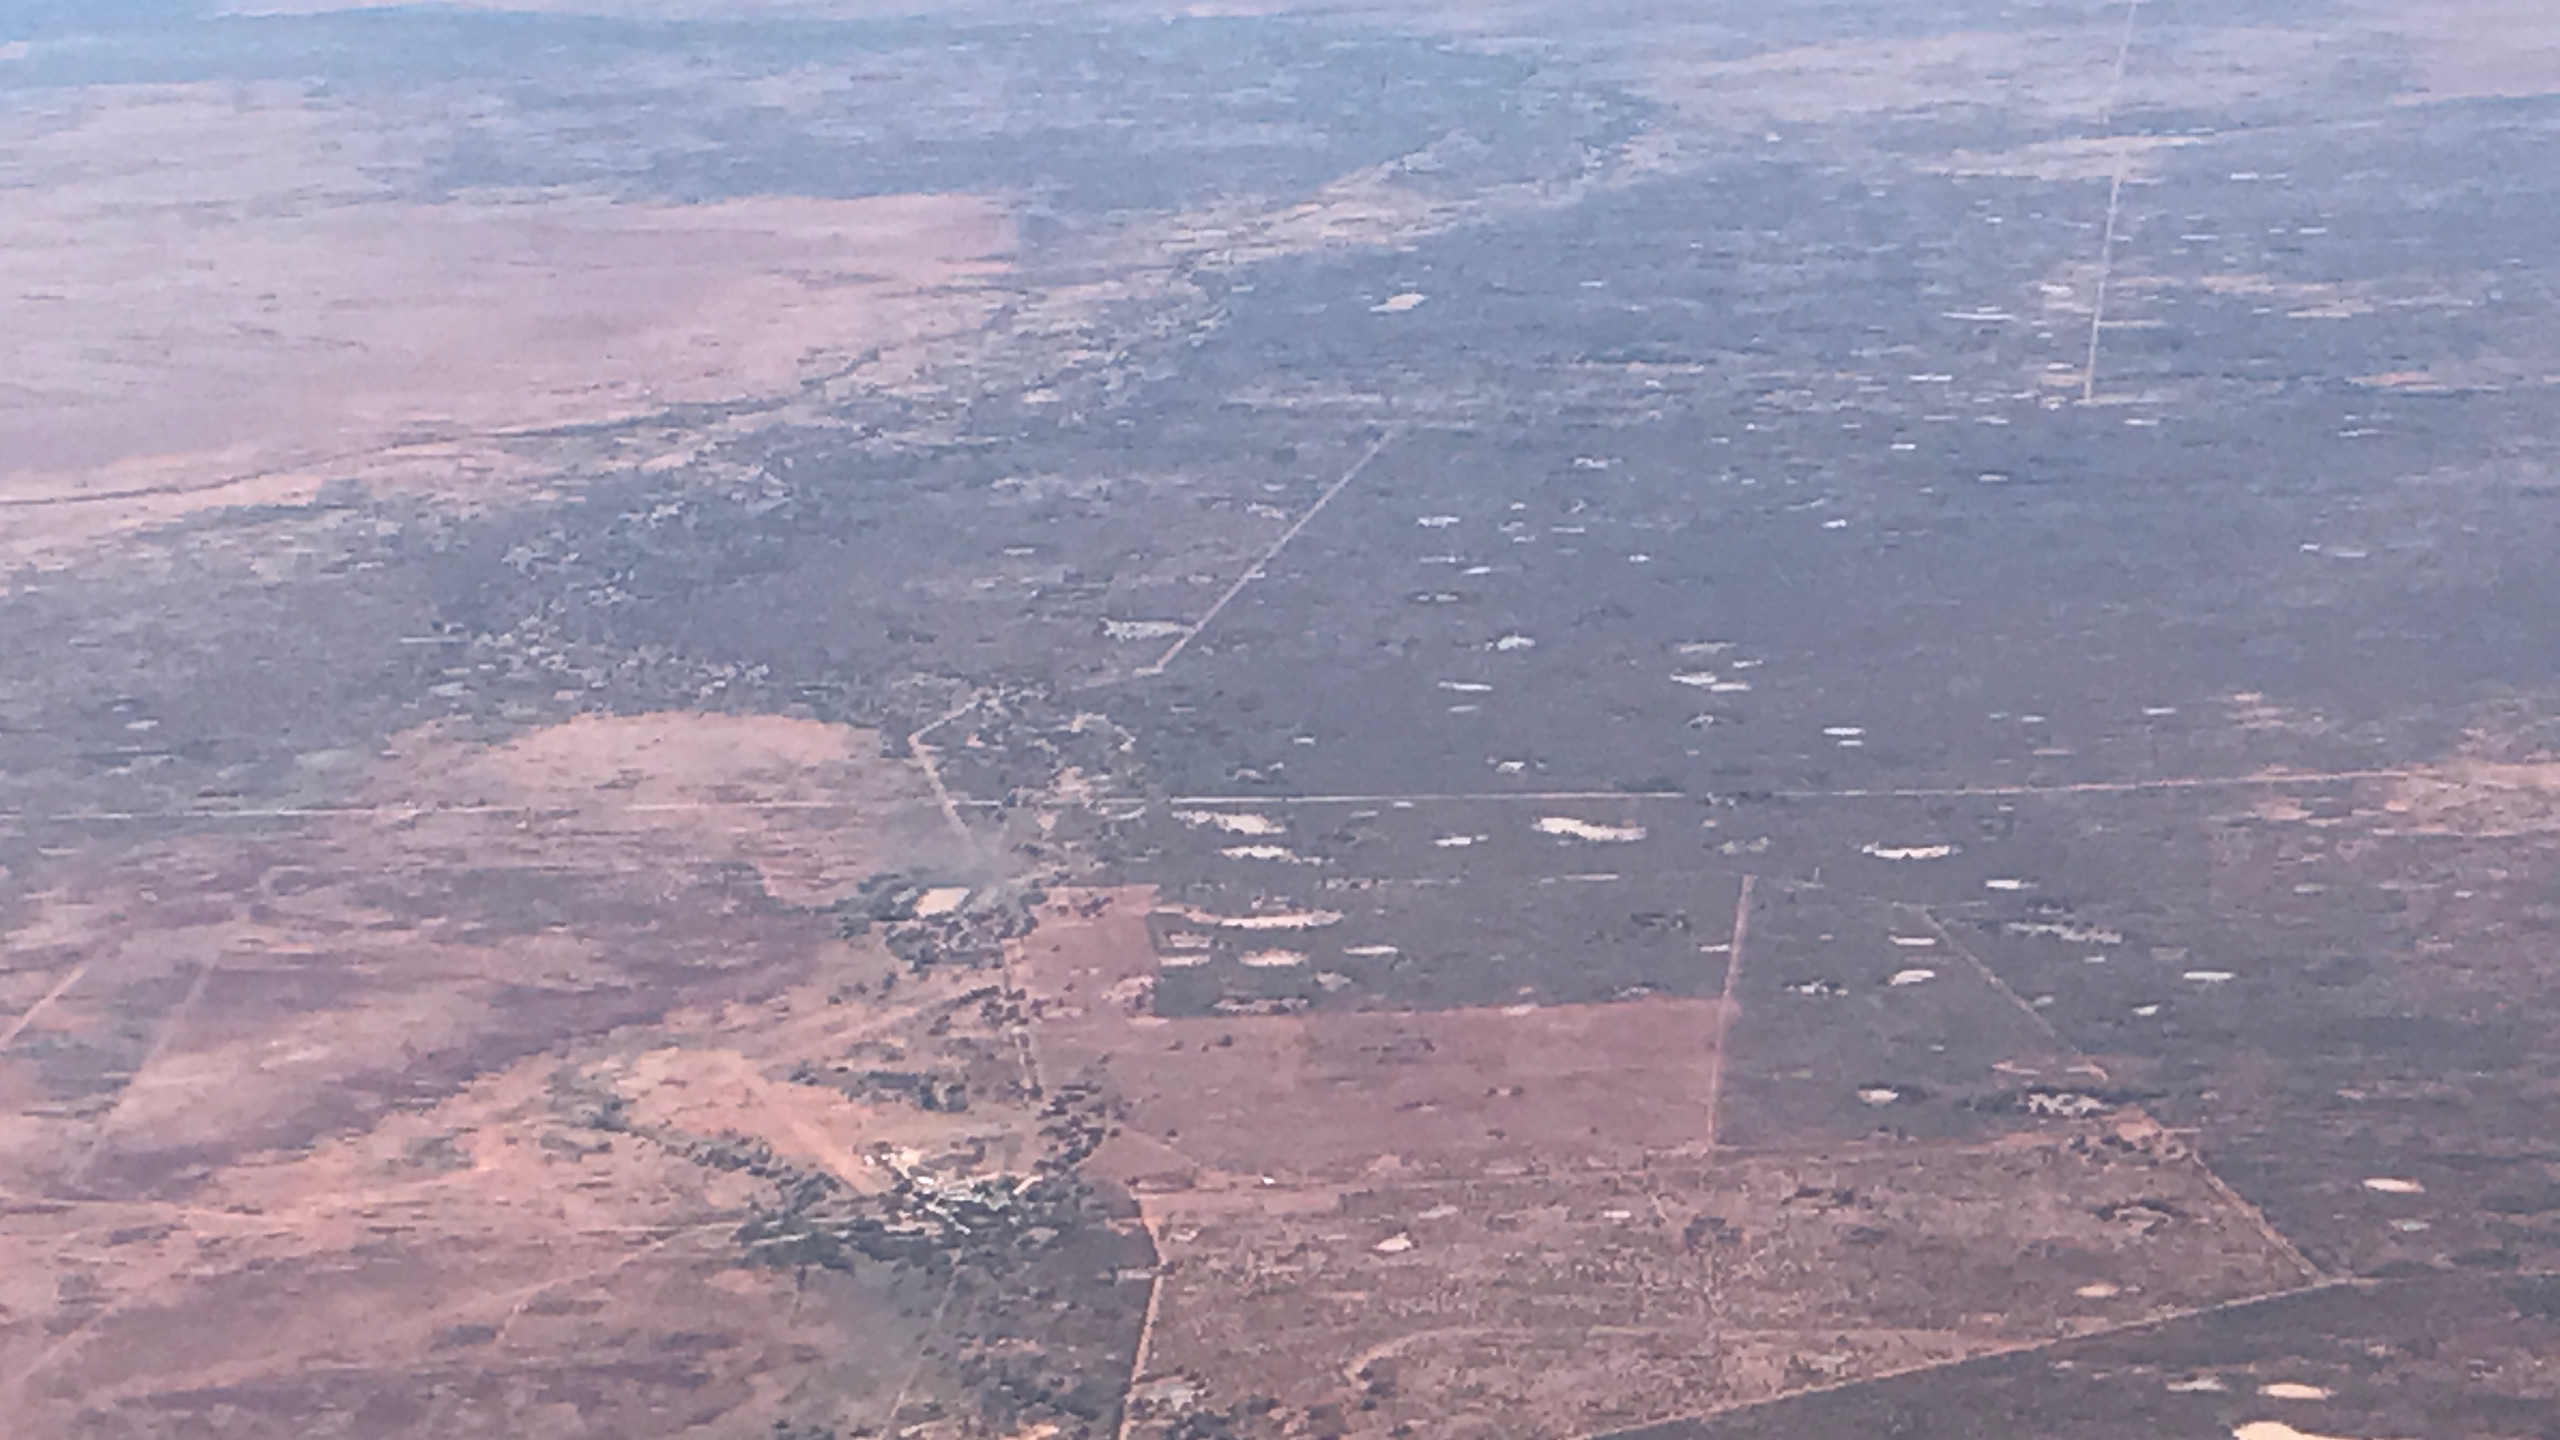 Outback from the air